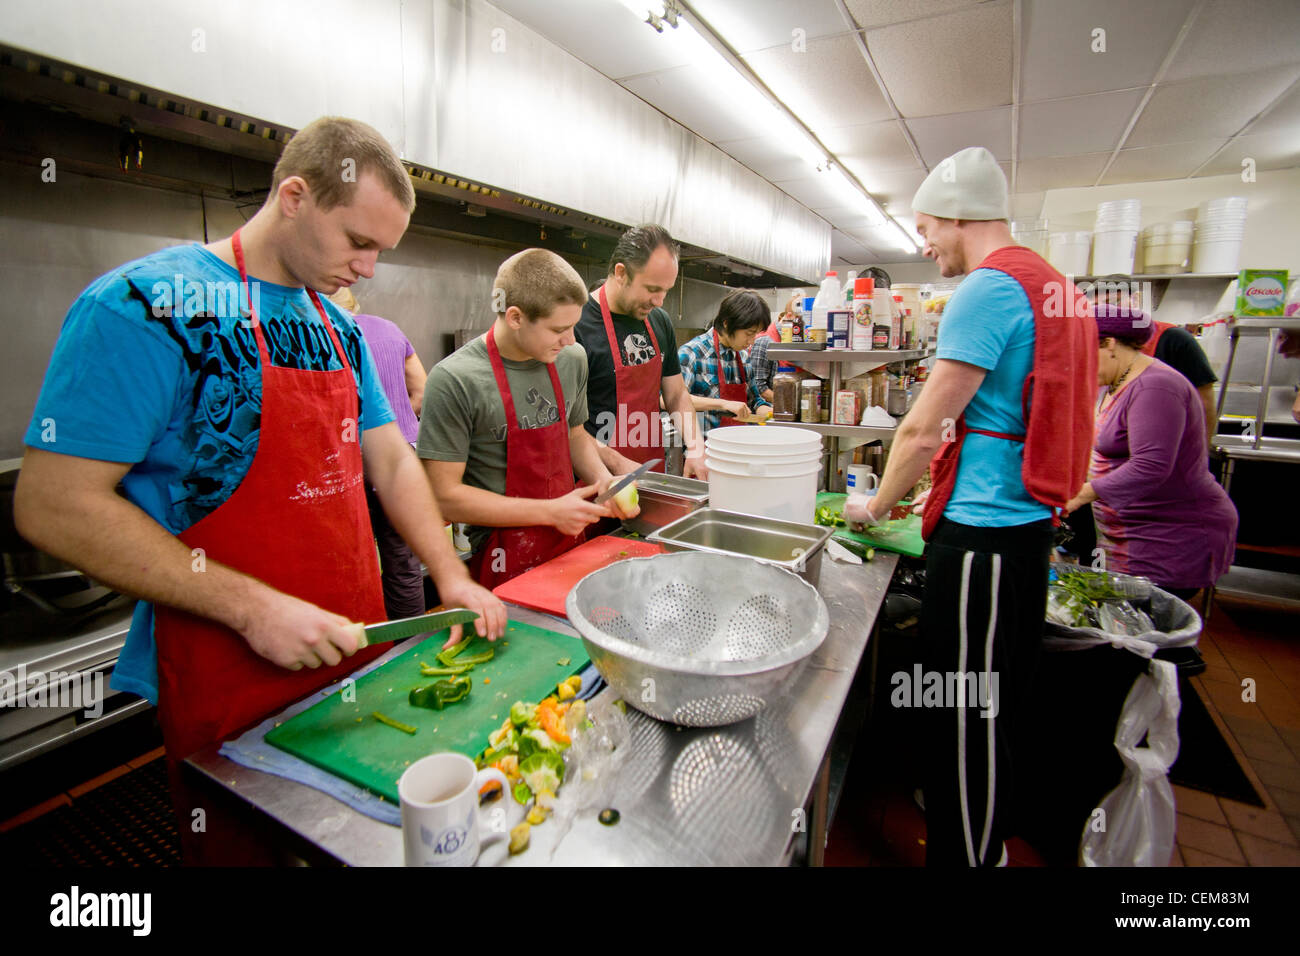 Middle Class Charitable Volunteers Pitch In At A Costa Mesa, CA, Soup  Kitchen To Feed The Homeless.